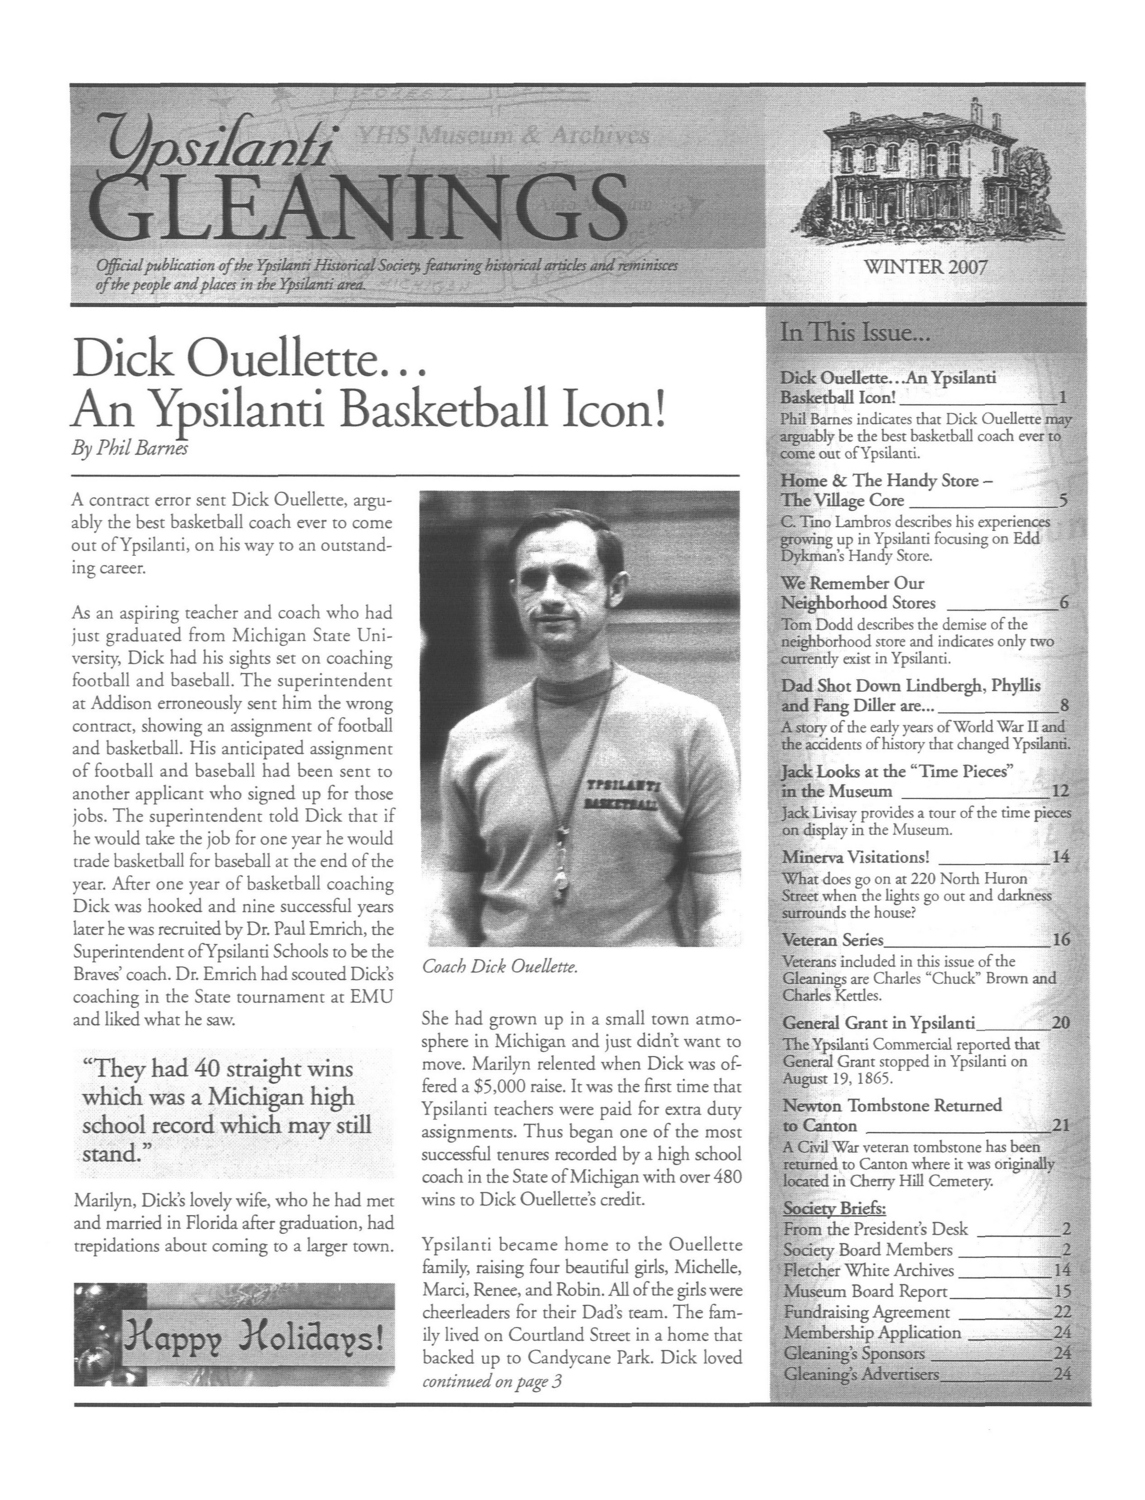 Dick Ouellette...An Ypsilanti Basketball Icon! image